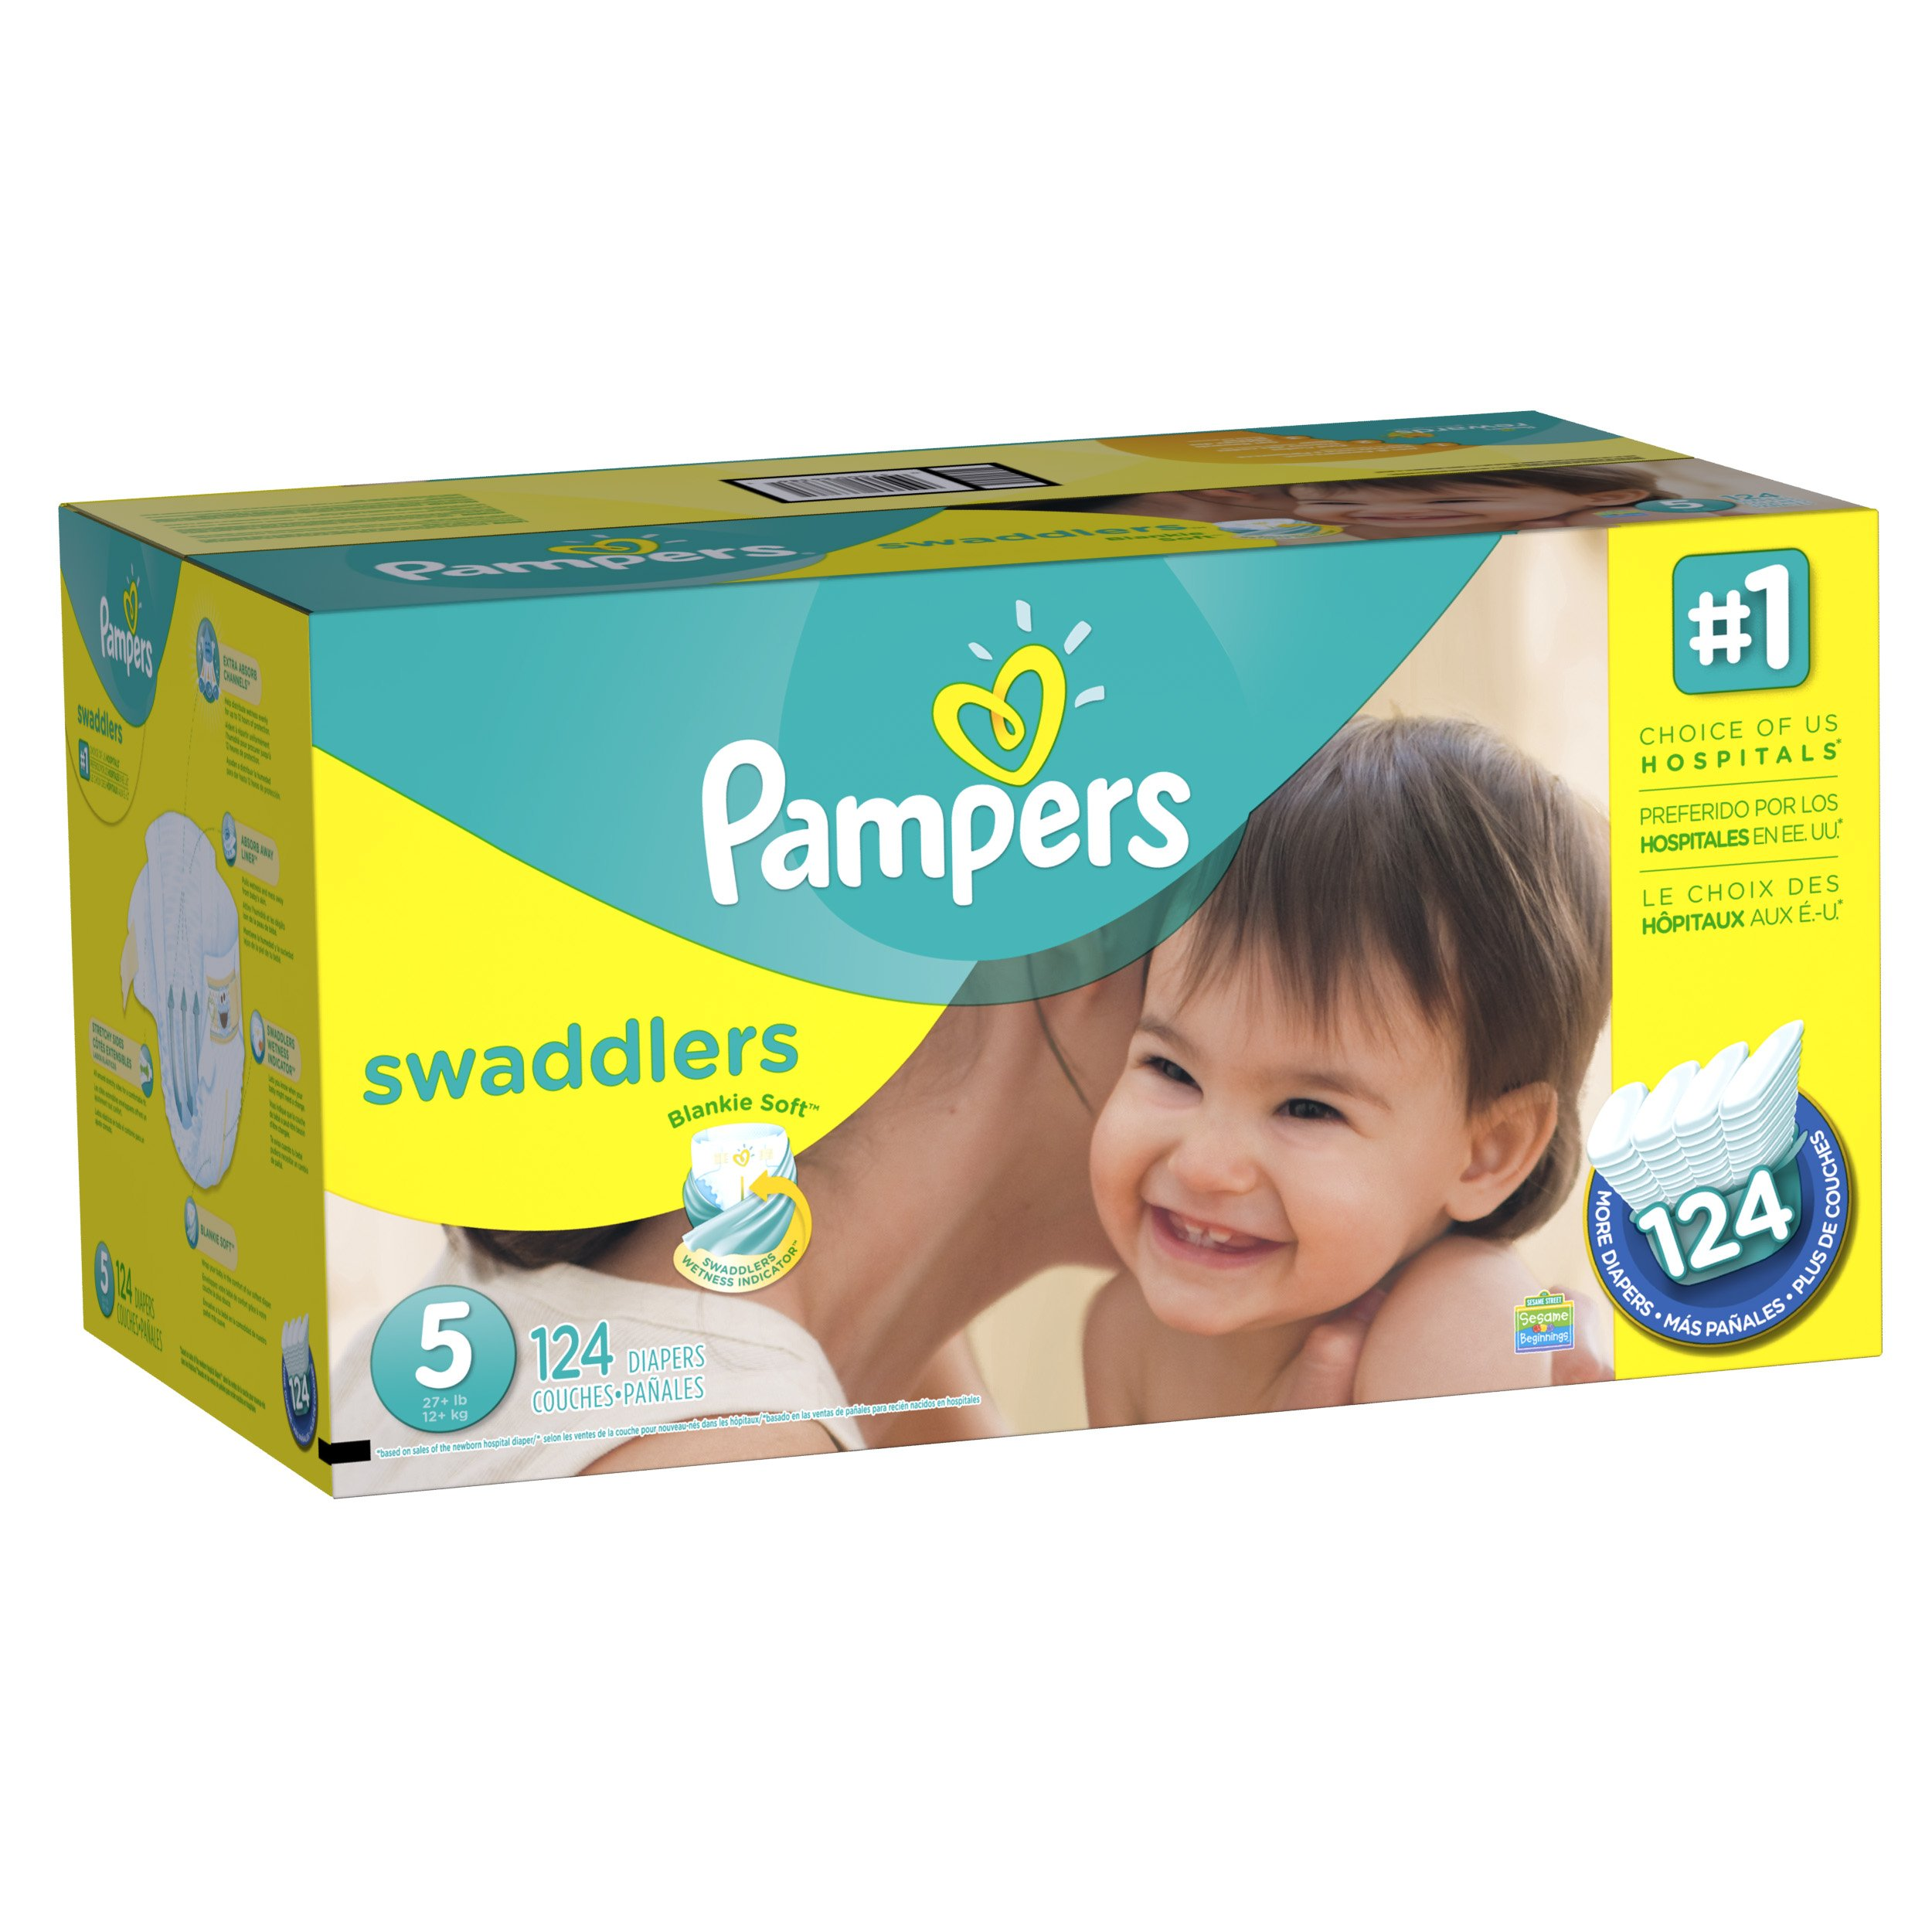 Diaper Coupons: Free Printable Baby Coupons | Pampers USHospital Bag Video · Nurses Know Video · Big Discounts · Join Pampers Family,+ followers on Twitter.